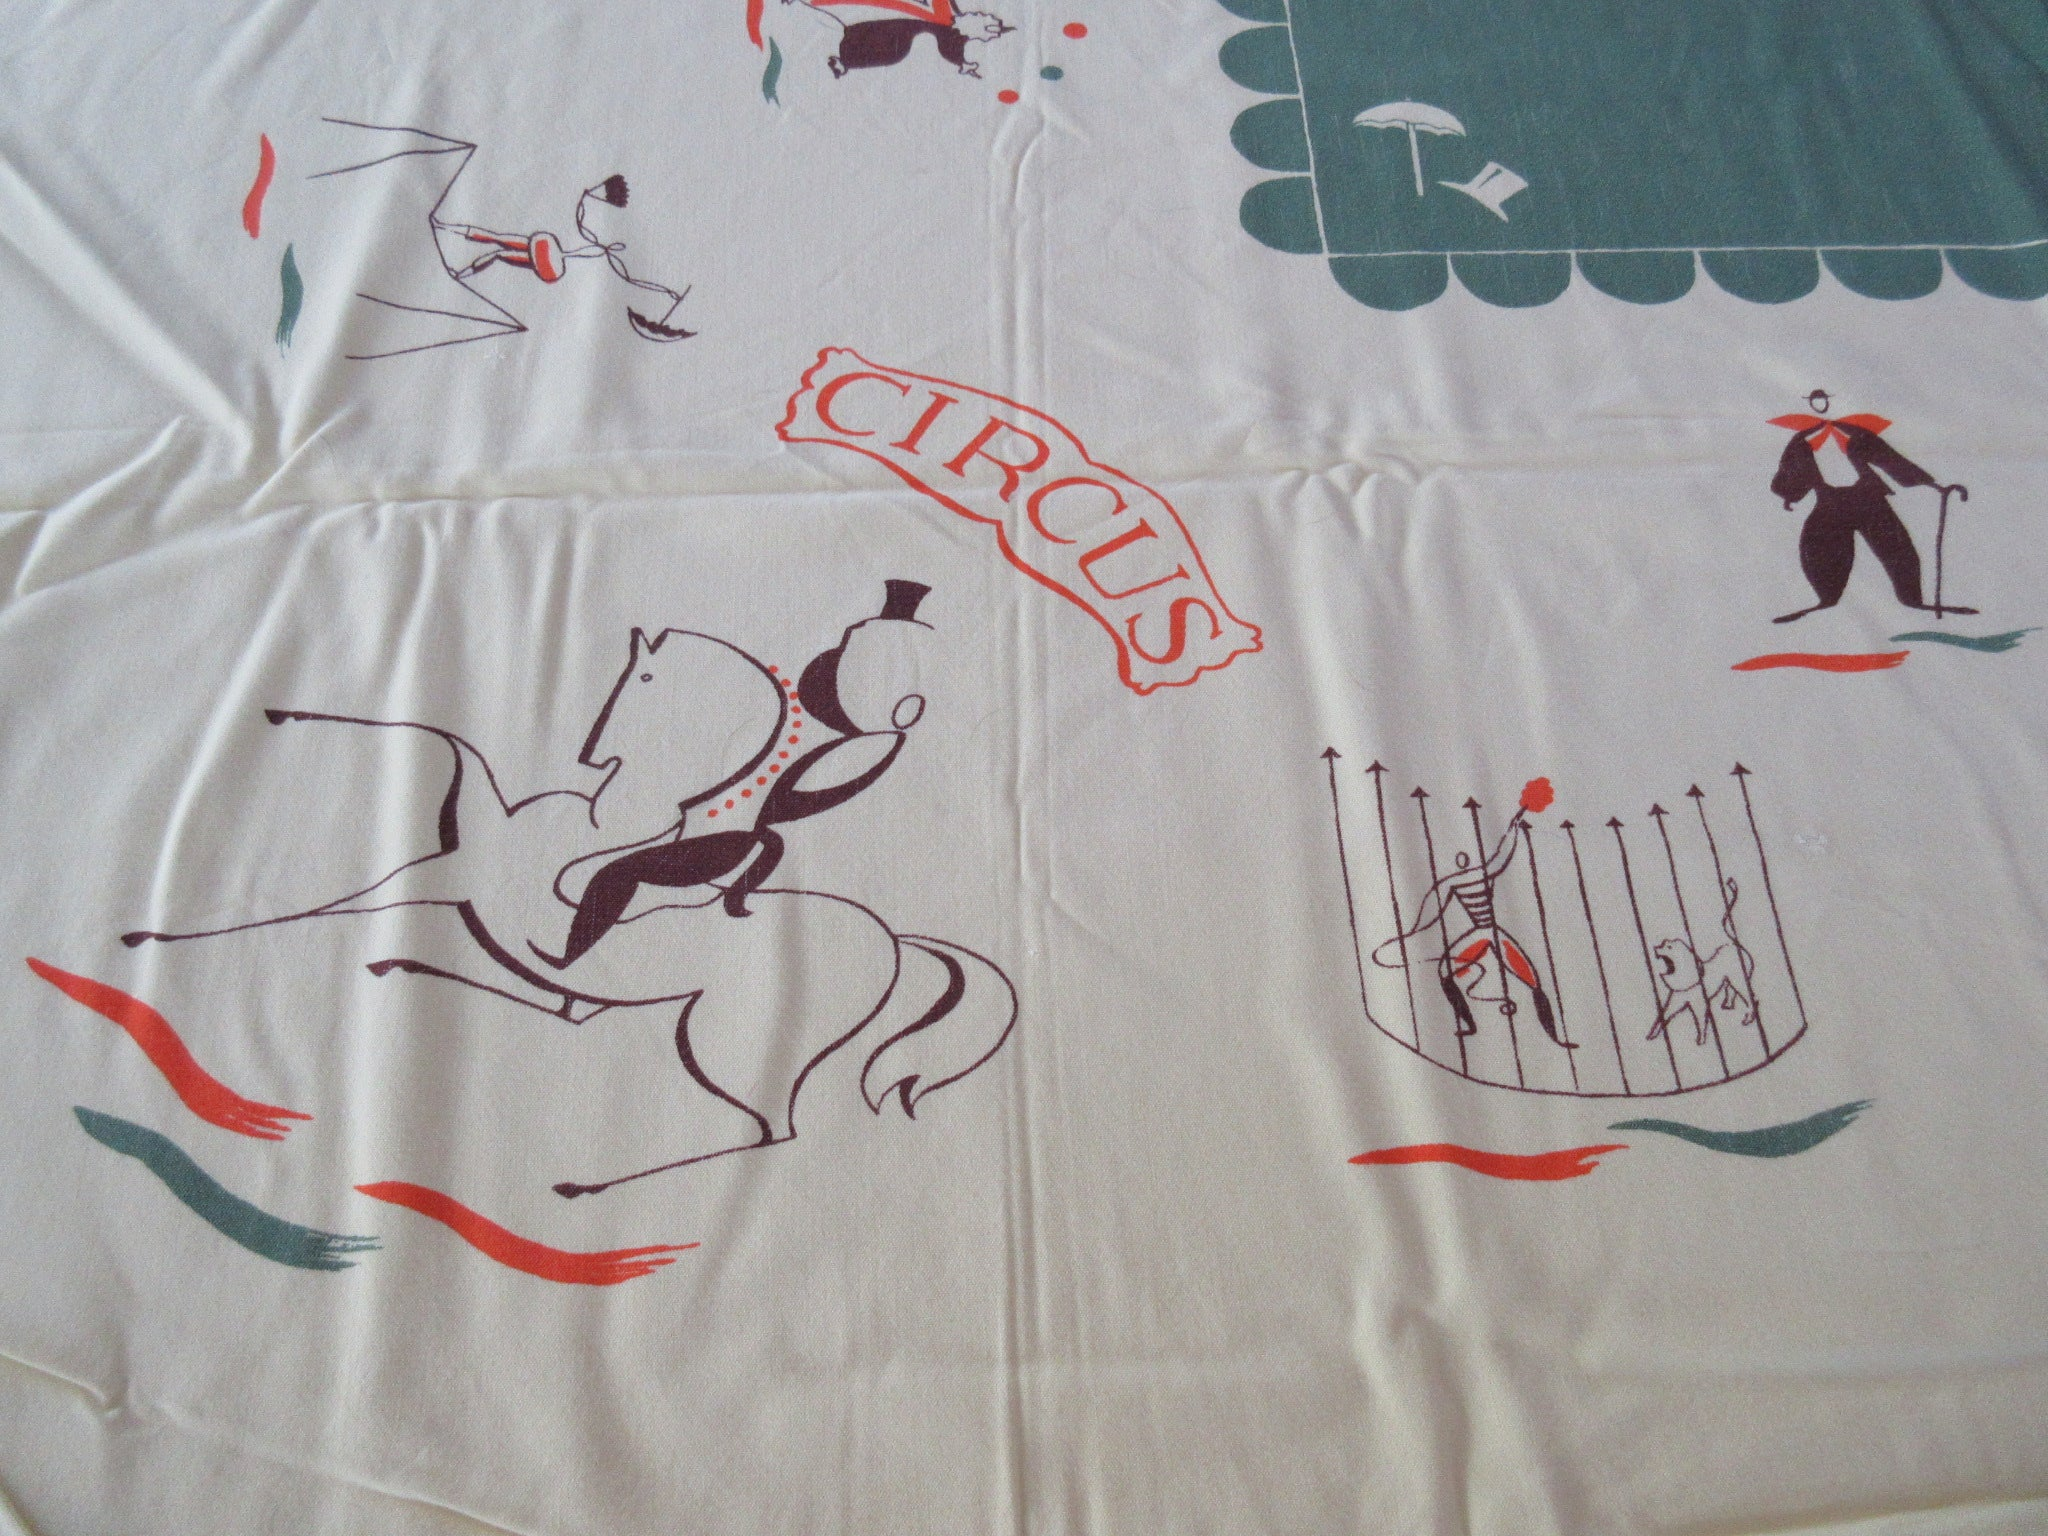 GOLD Rare CHP Circus Performers Cutter? Novelty Vintage Printed Tablecloth (51 X 45)